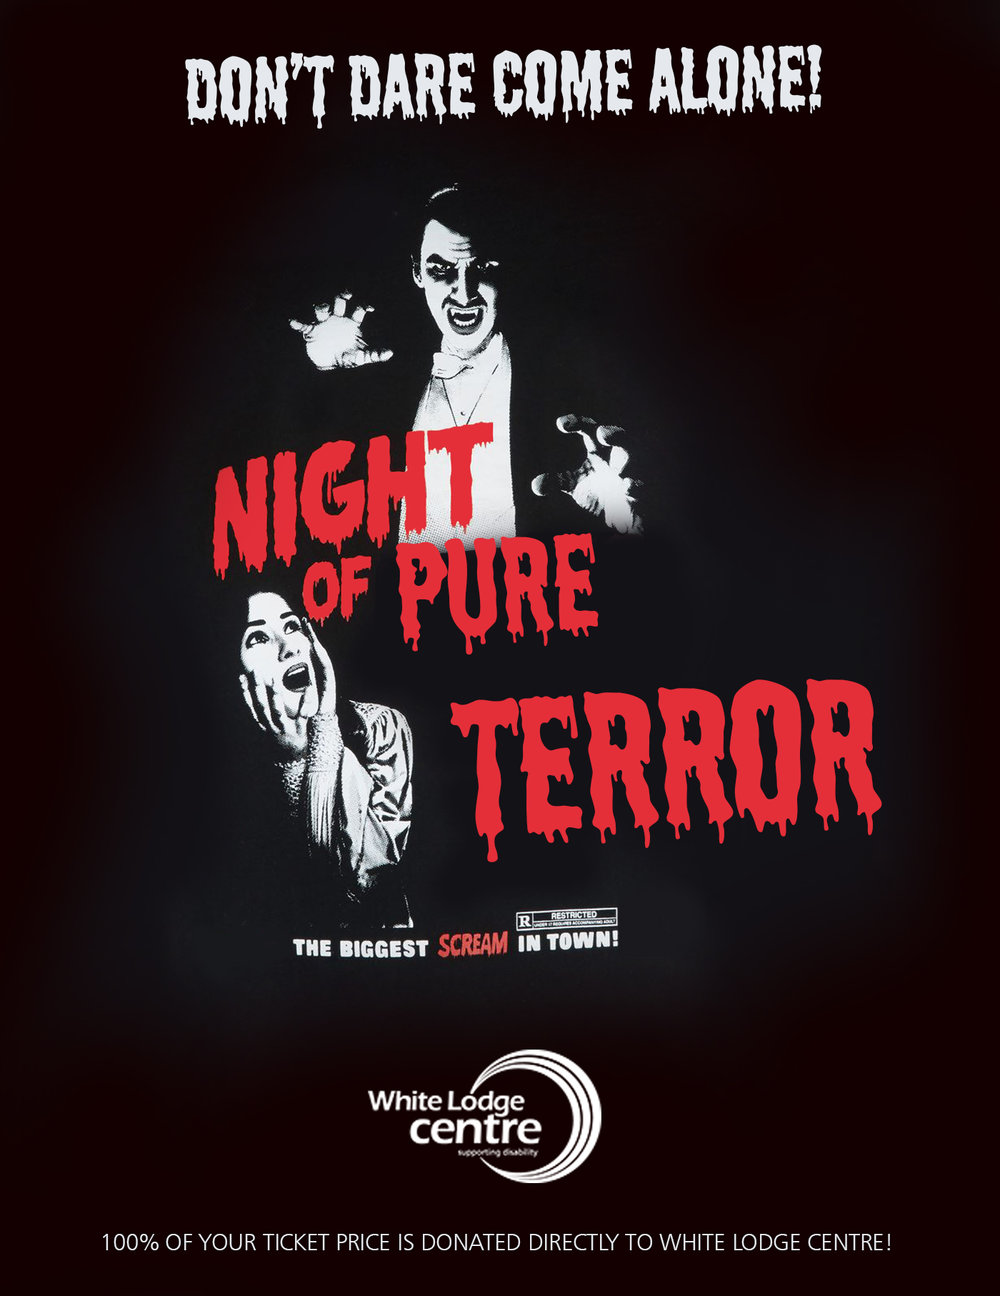 Night-of-PURE-Terror-1200.jpg